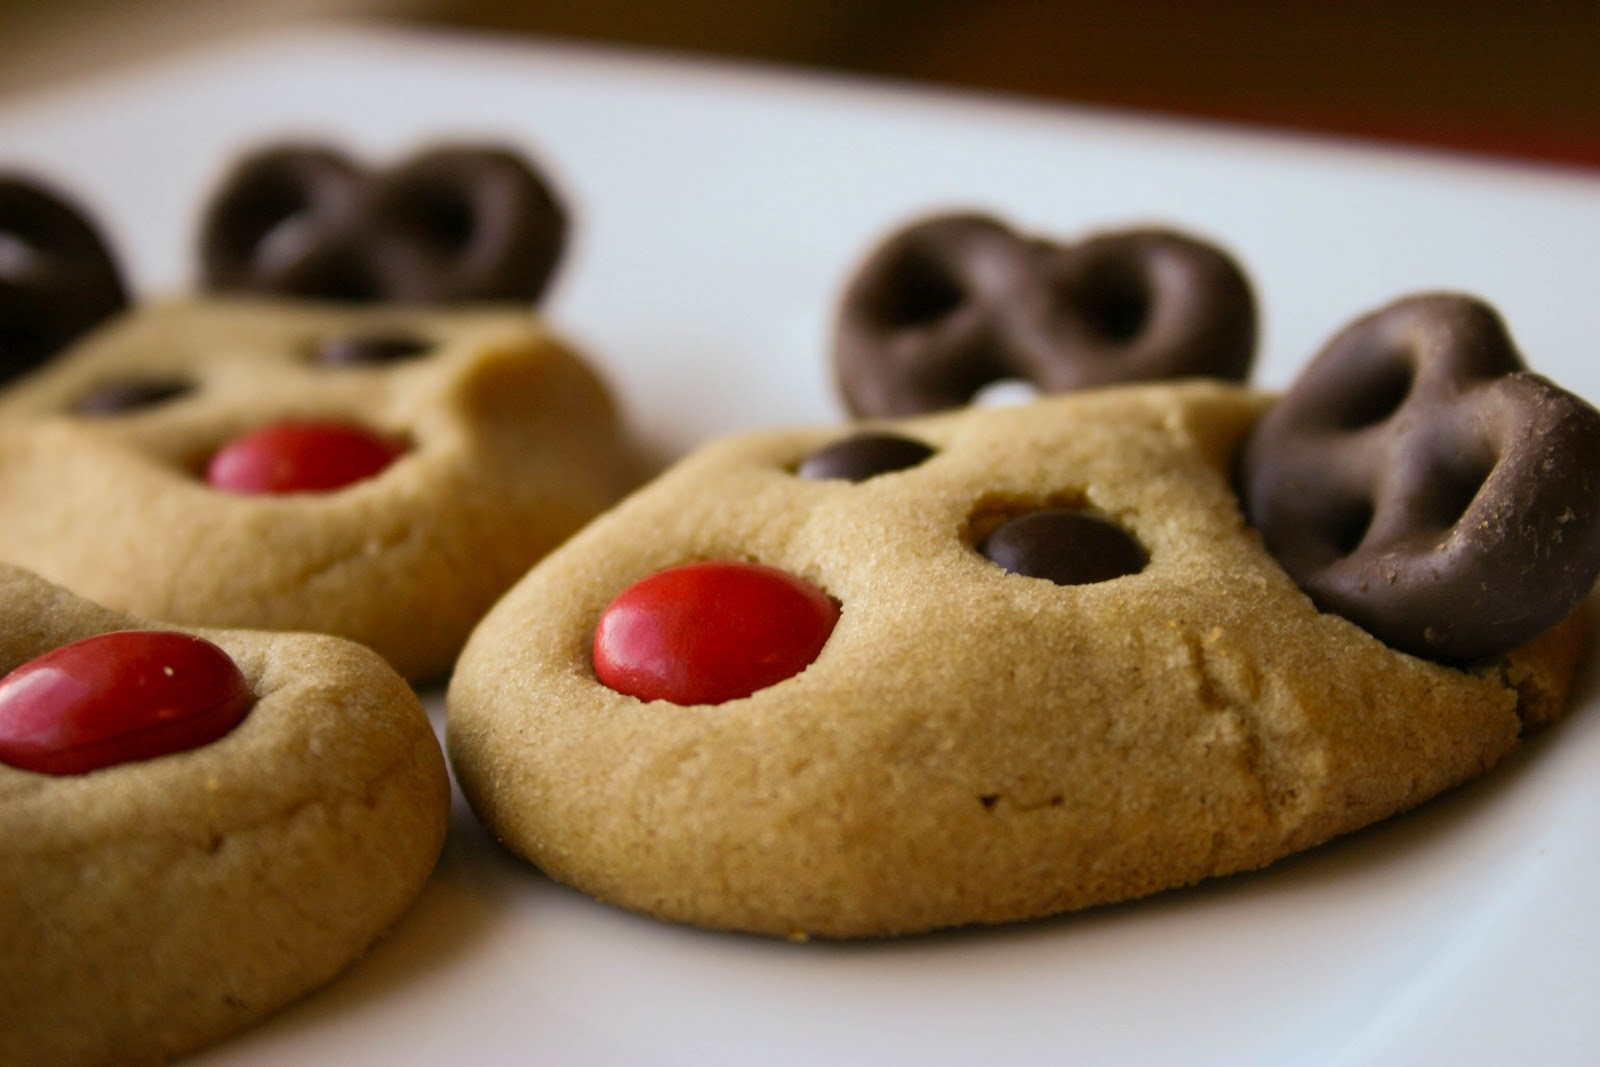 This year, I've taken my sugar cookie decorating up a festive notch with my reindeer sugar cookies! With red M&Ms for noses, chocolate-frosting balls for eyes and pretzel sticks for antlers, these Rudolph-inspired sugar cookies are almost too cute to eat. Almost.